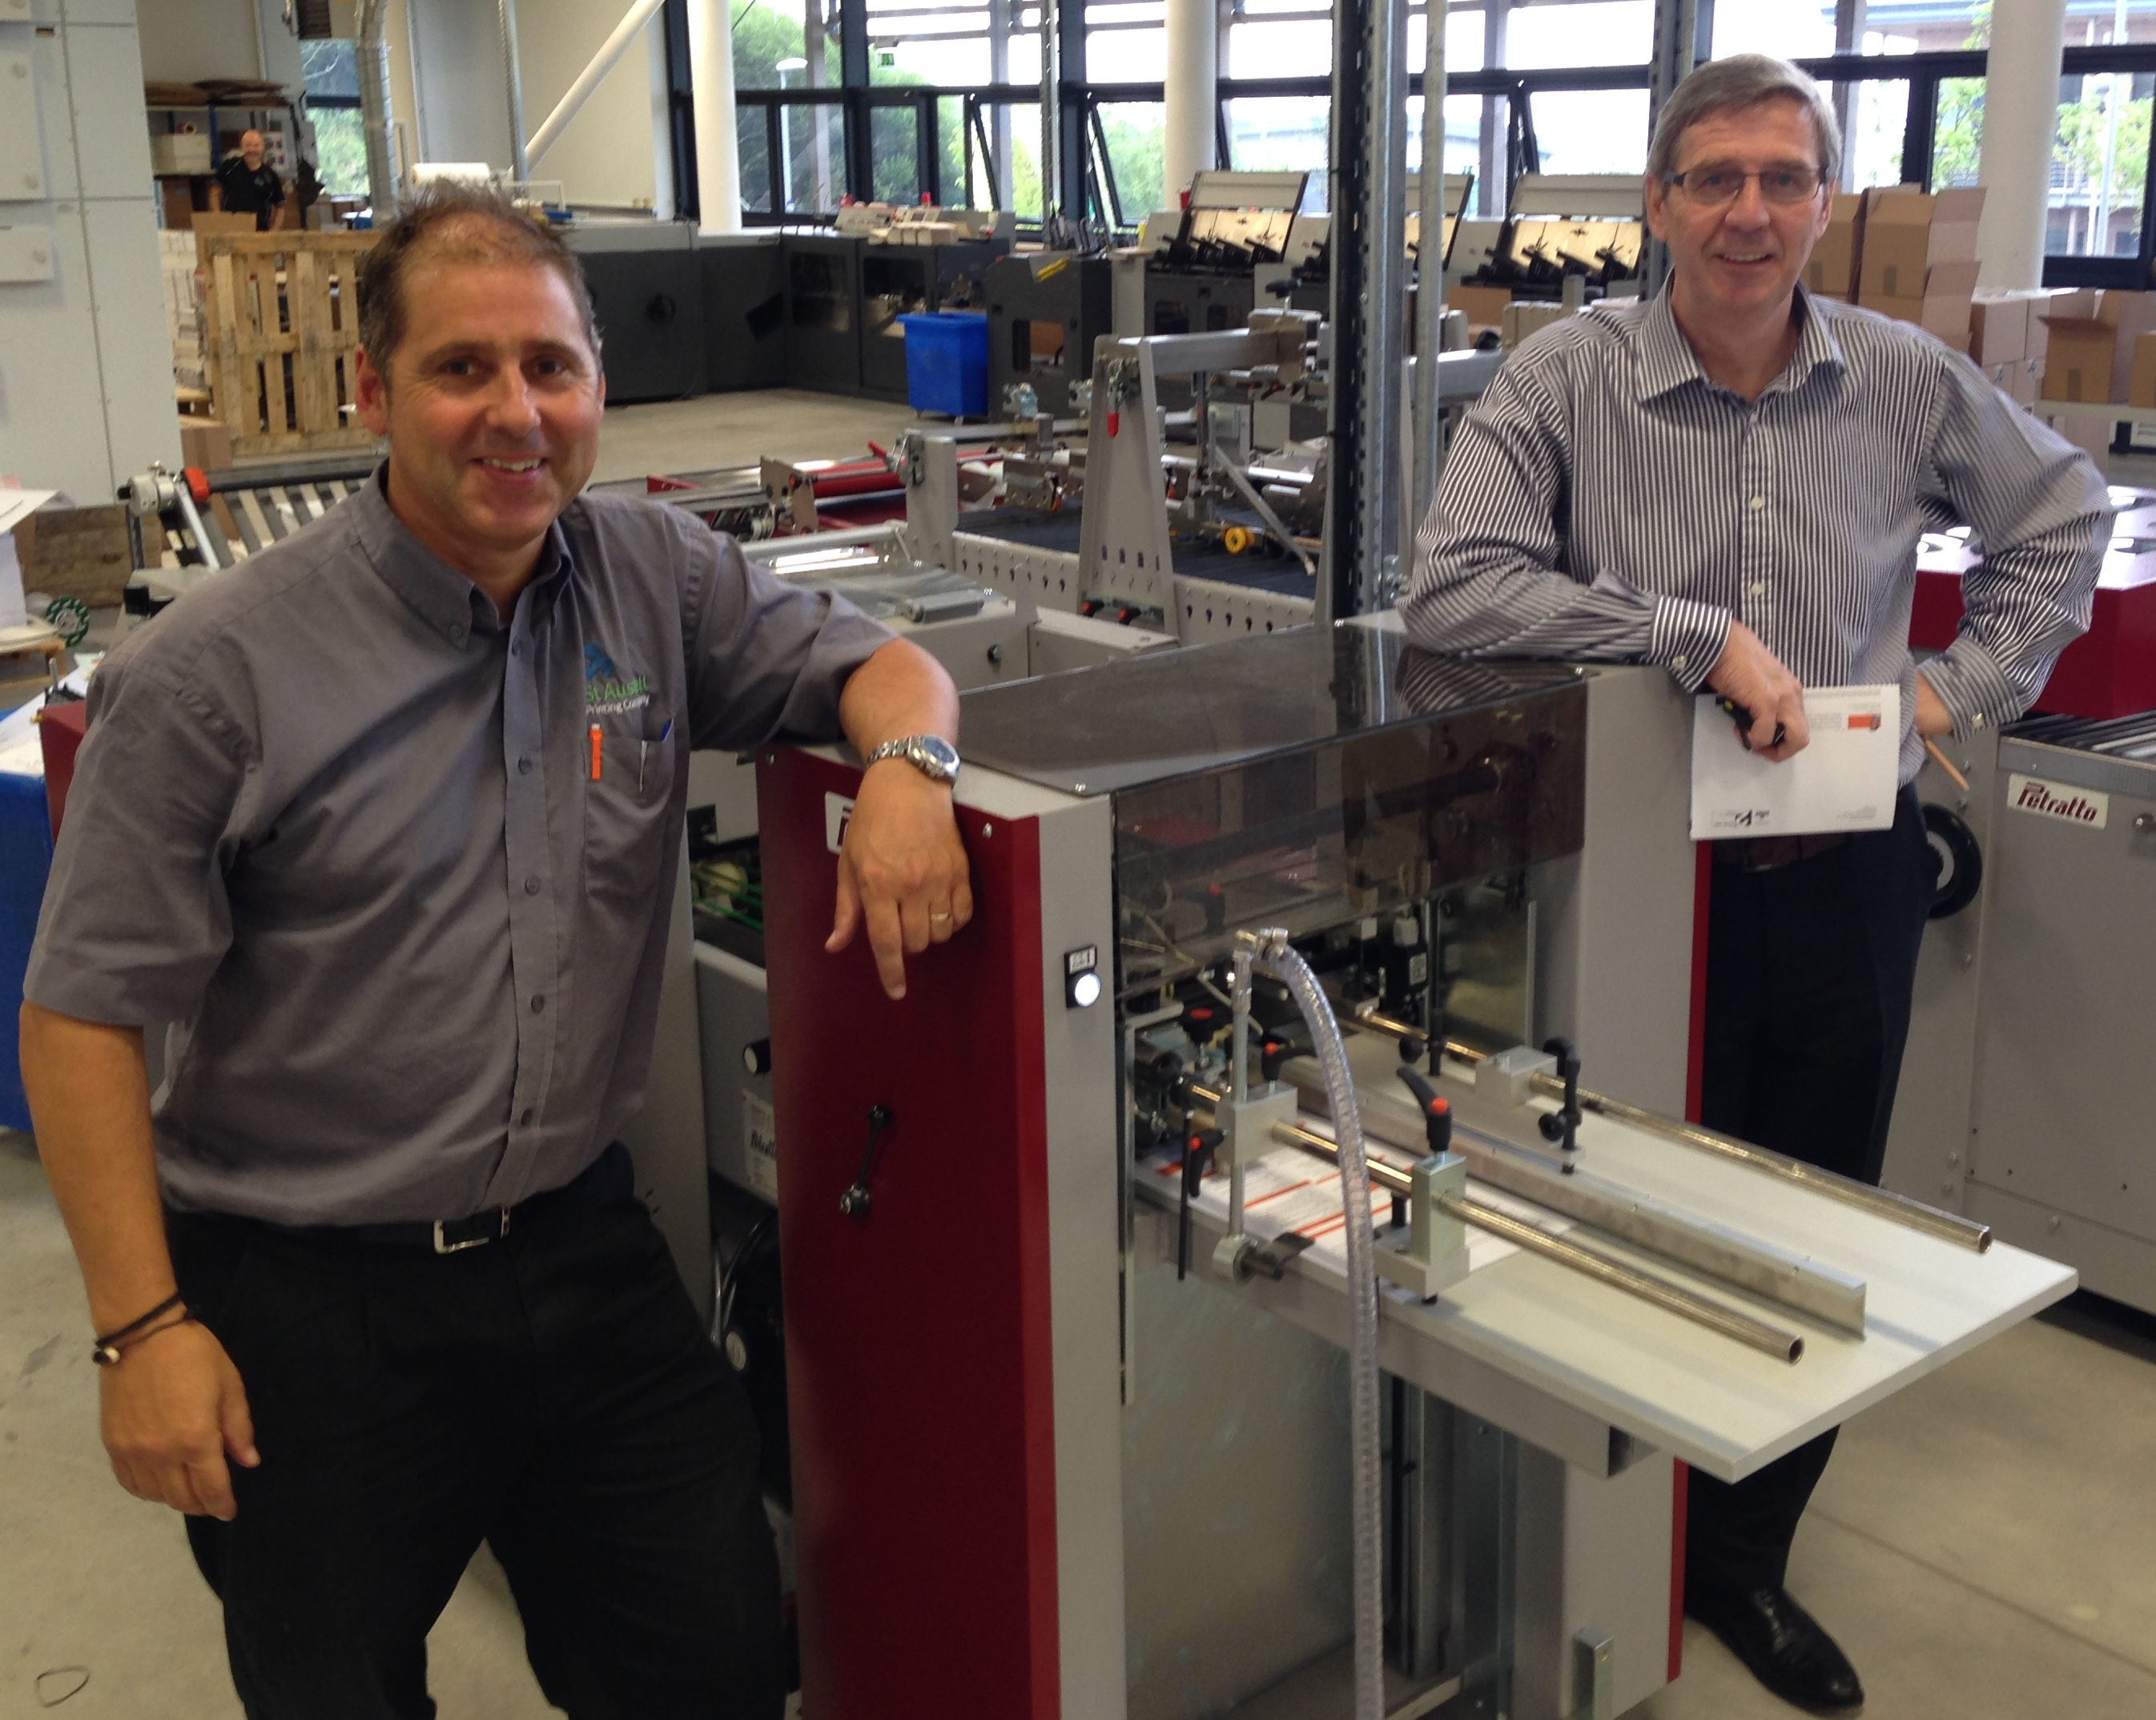 St Austell Printing Company's bindery manager Anthony 'Tux' Tucker (left) and managing director Peter Moody with the new equipment from Italy. The duo spent a week in Italy testing the new equipment.